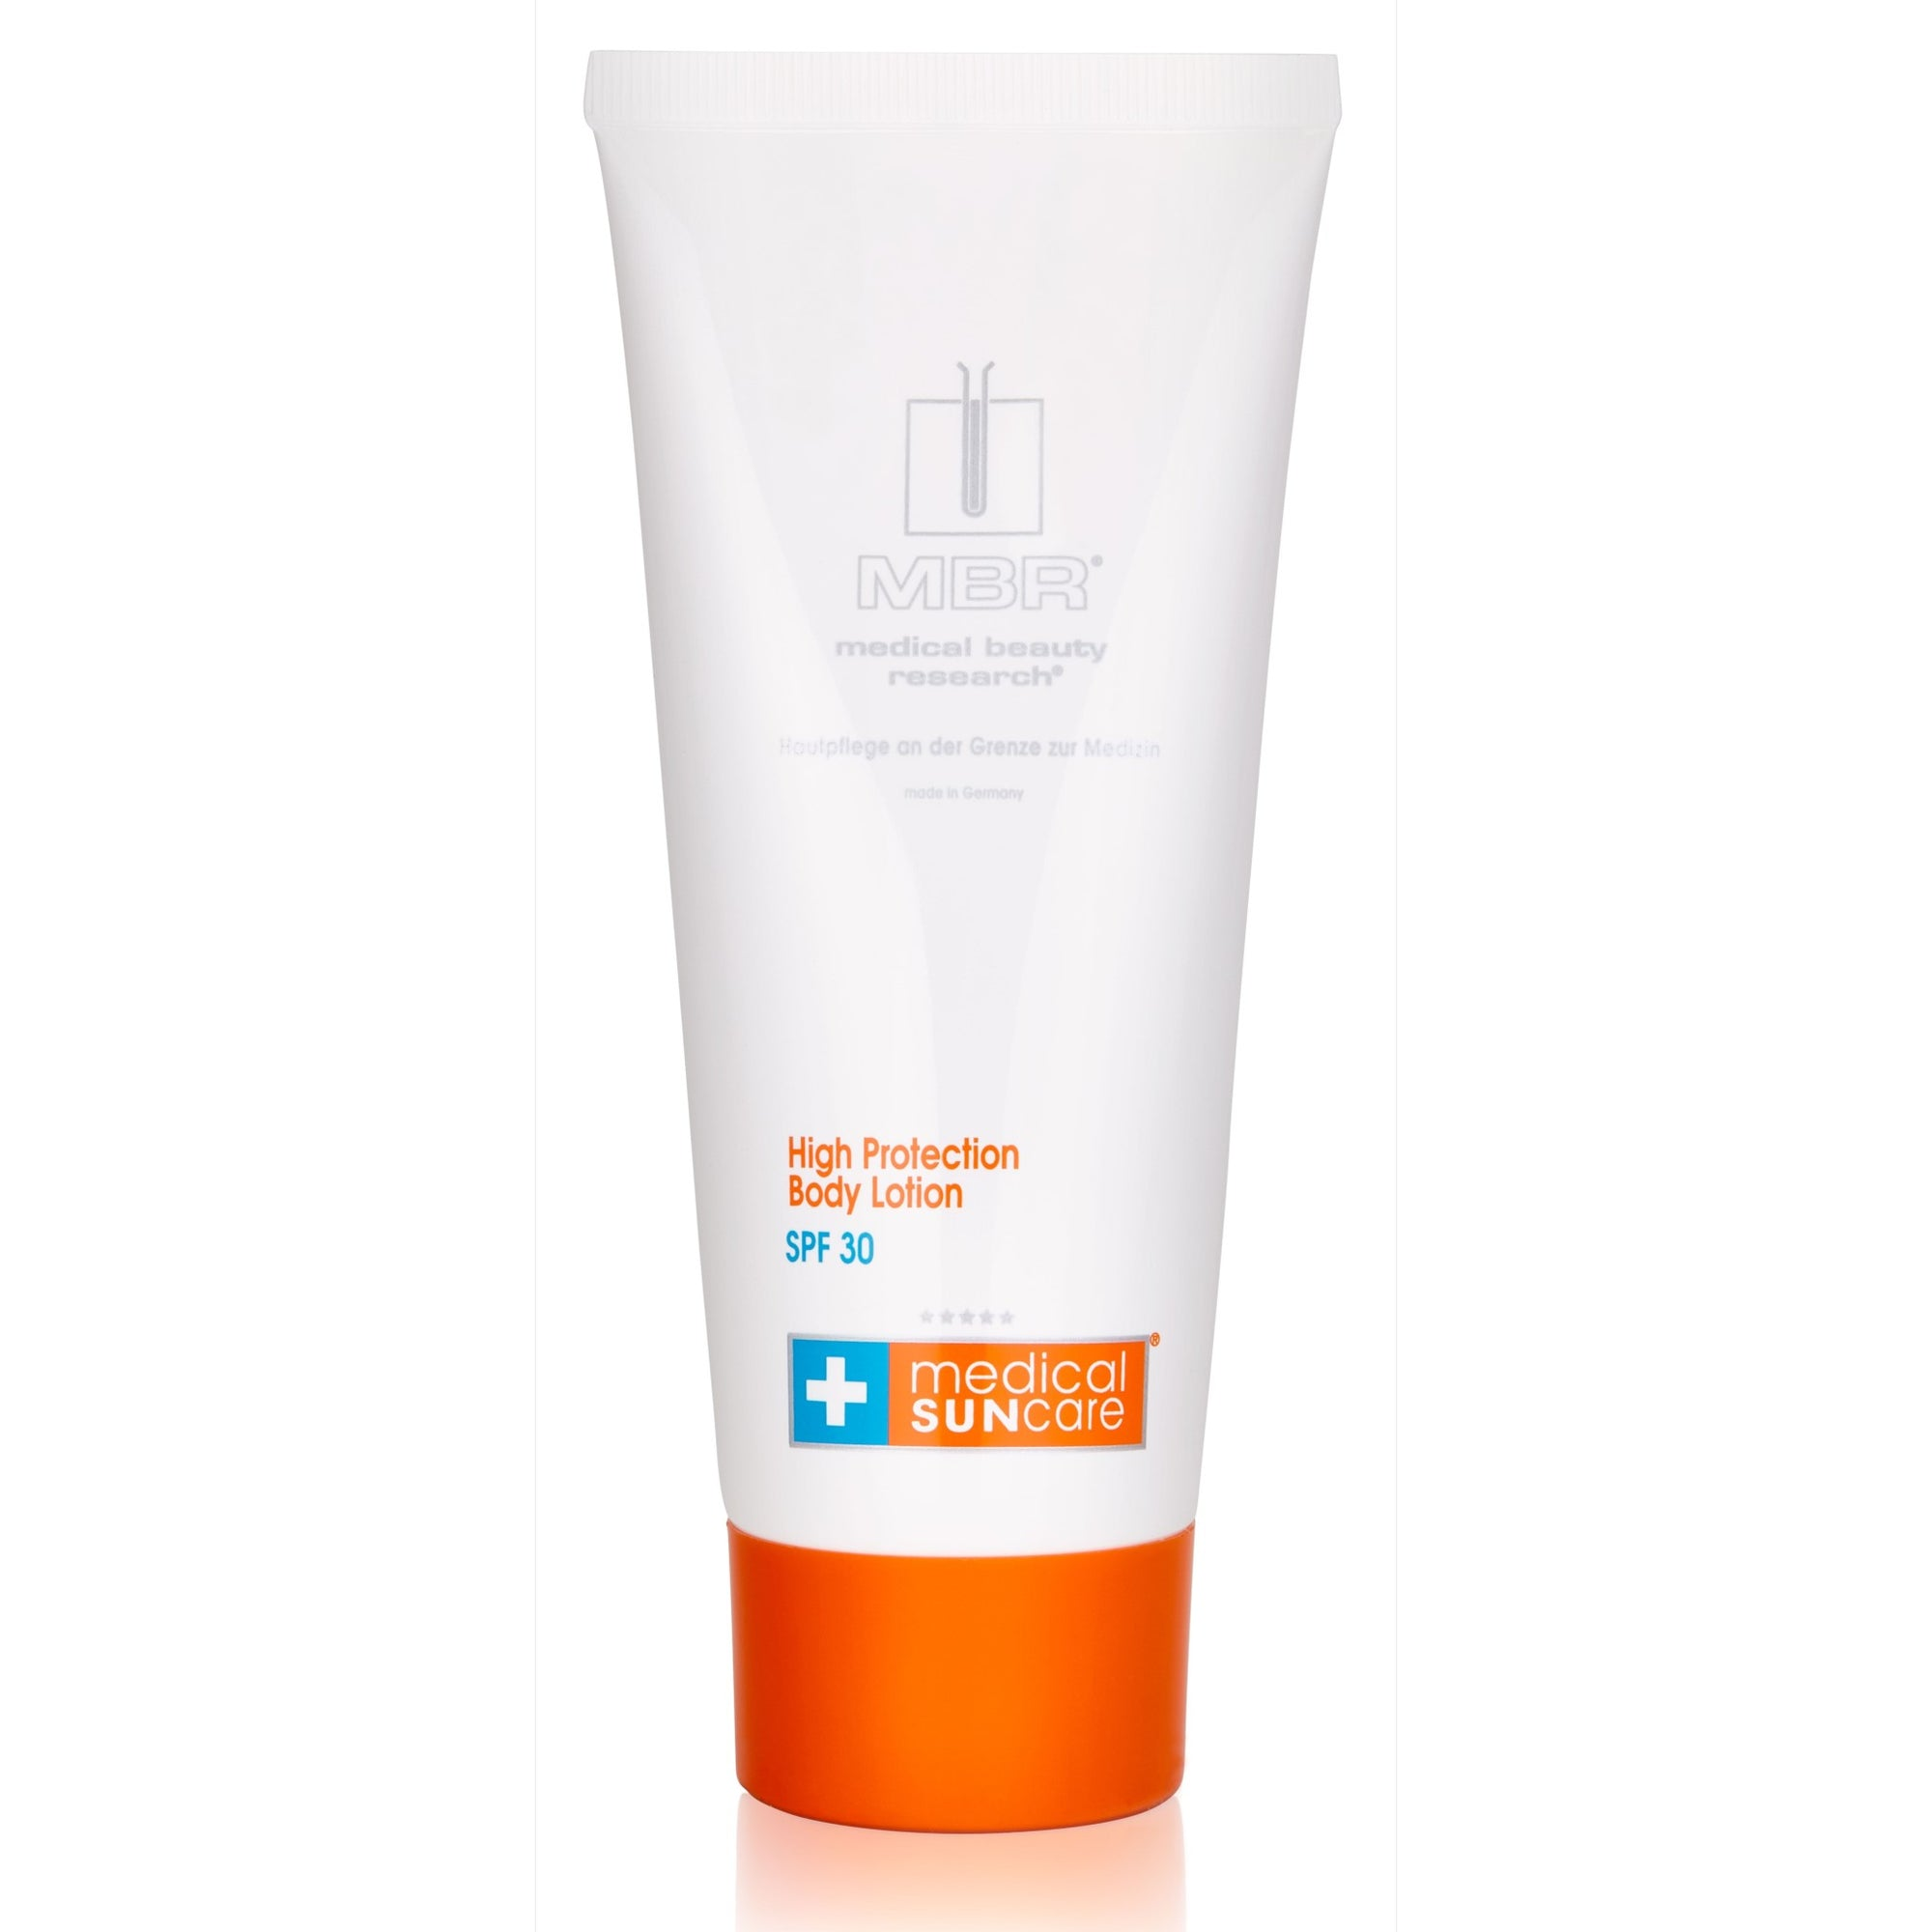 High Protection Body Lotion SPF 30 - MBR